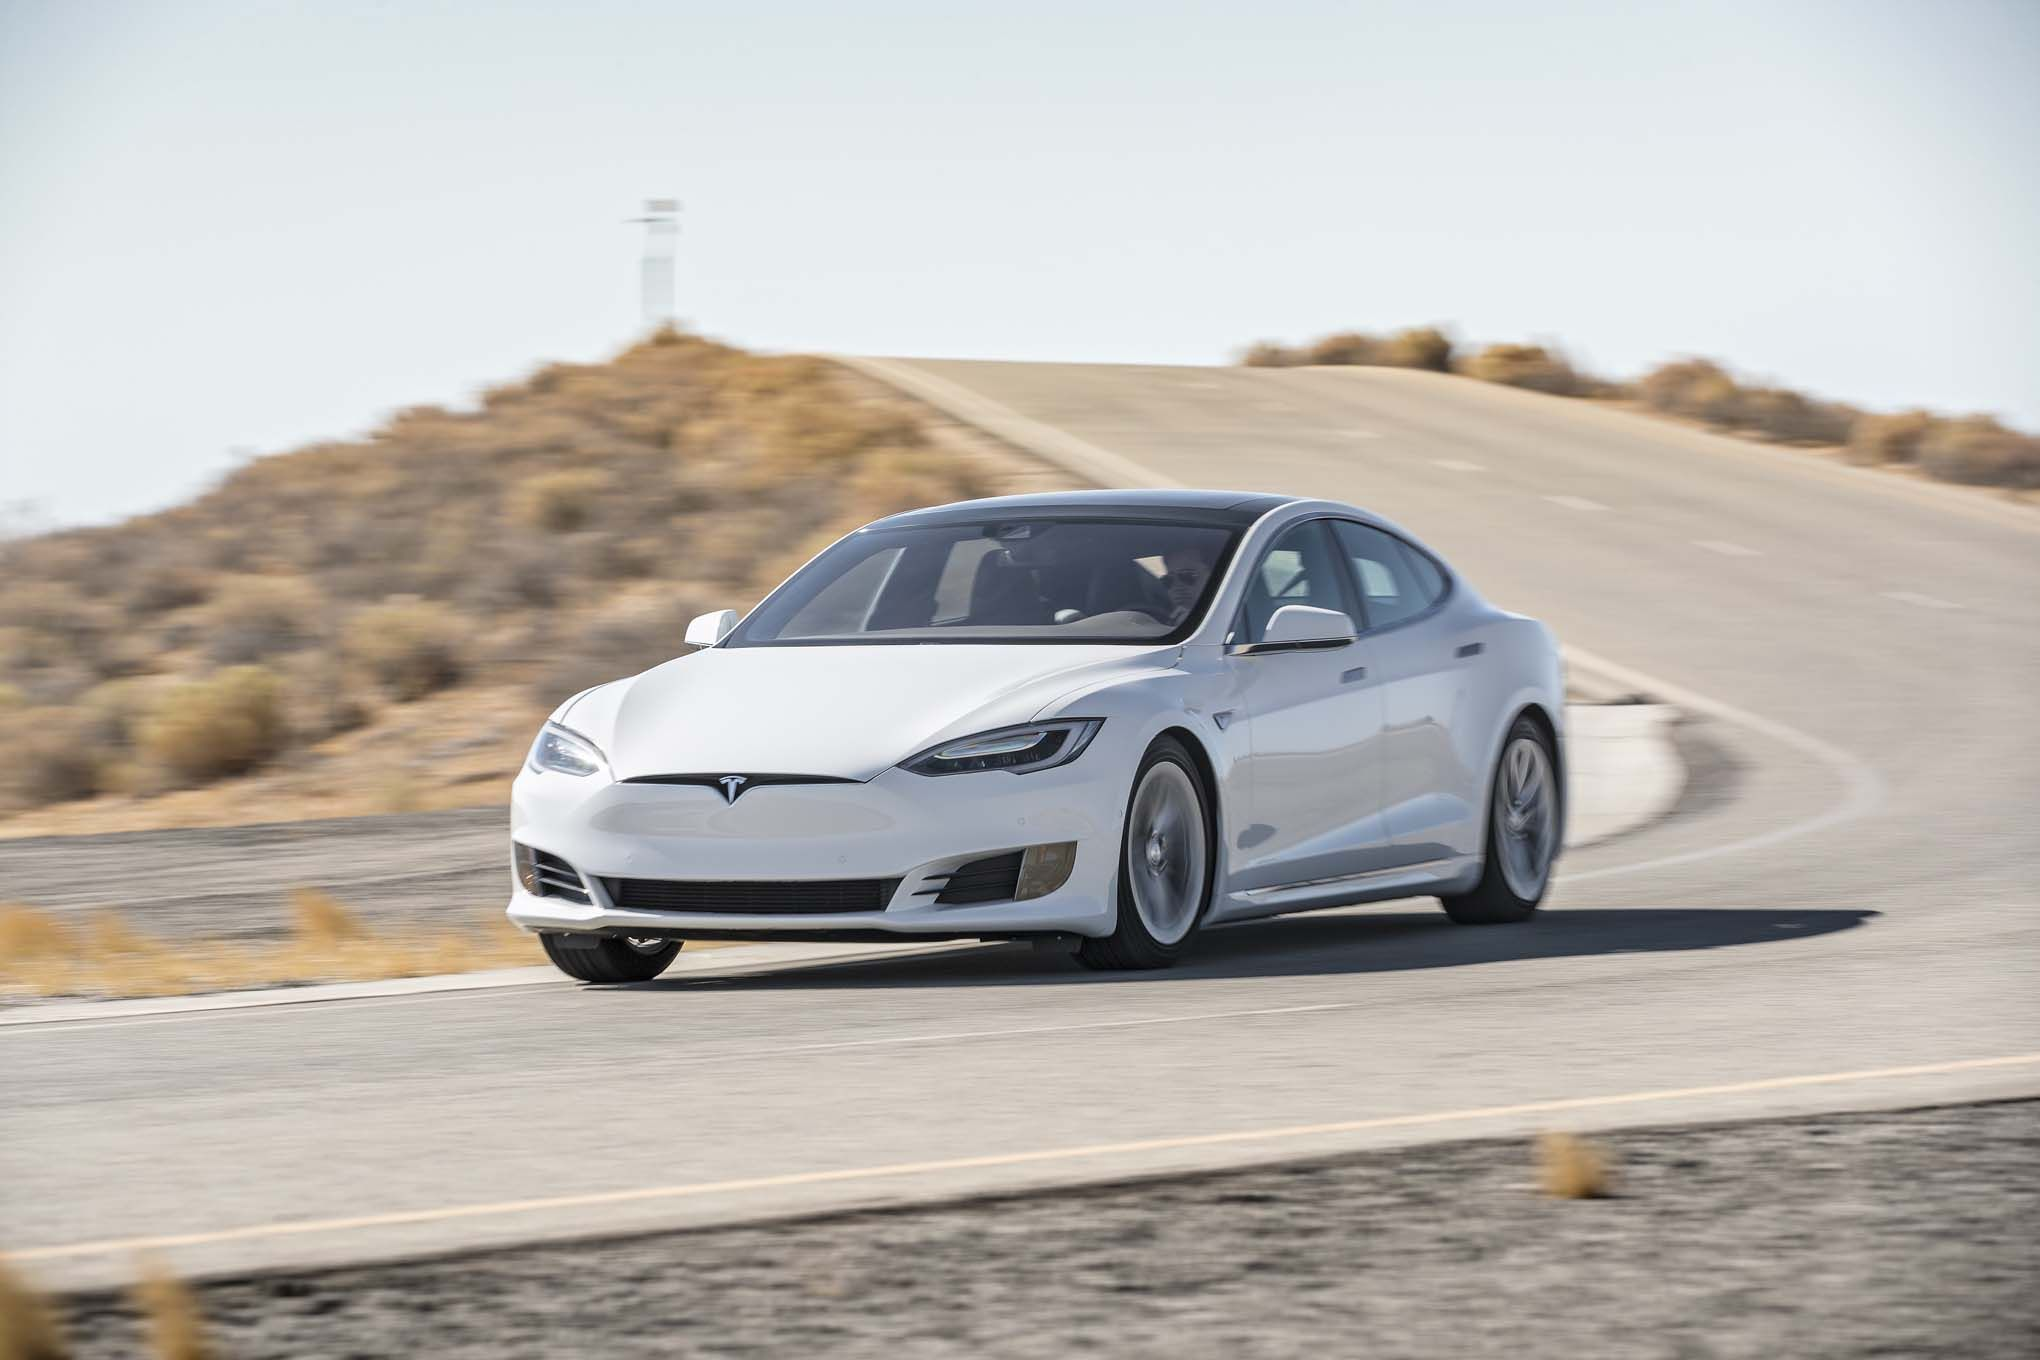 Most Cars Built In 10 Years Will Be Autonomous Tesla Ceo Says